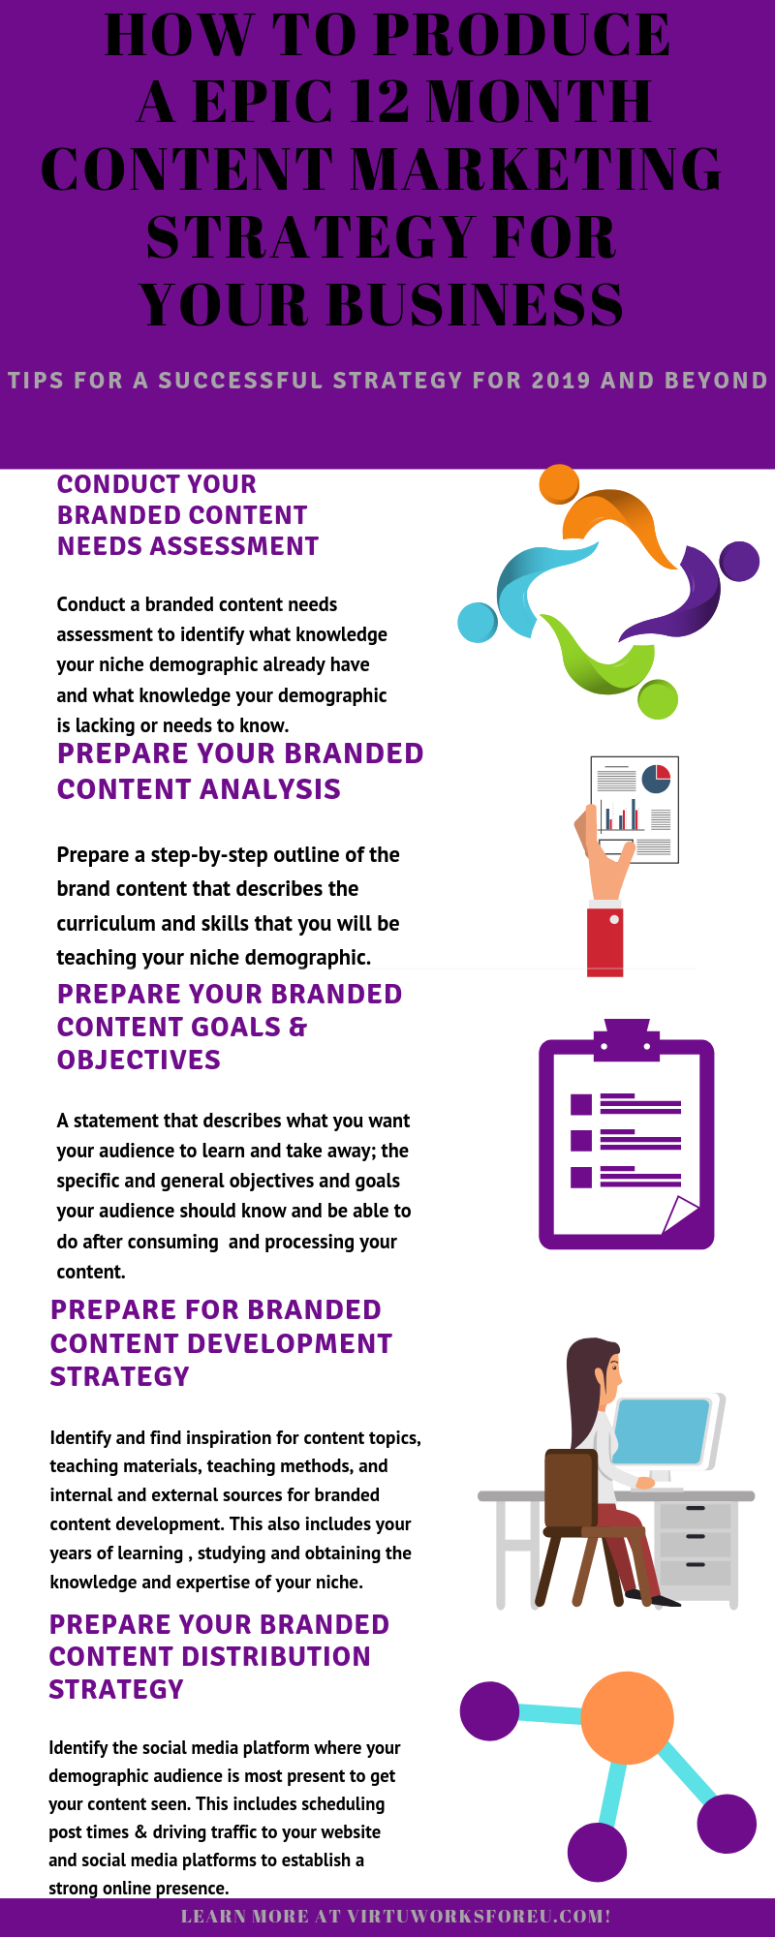 epic content marketing strategy 2019 infographic